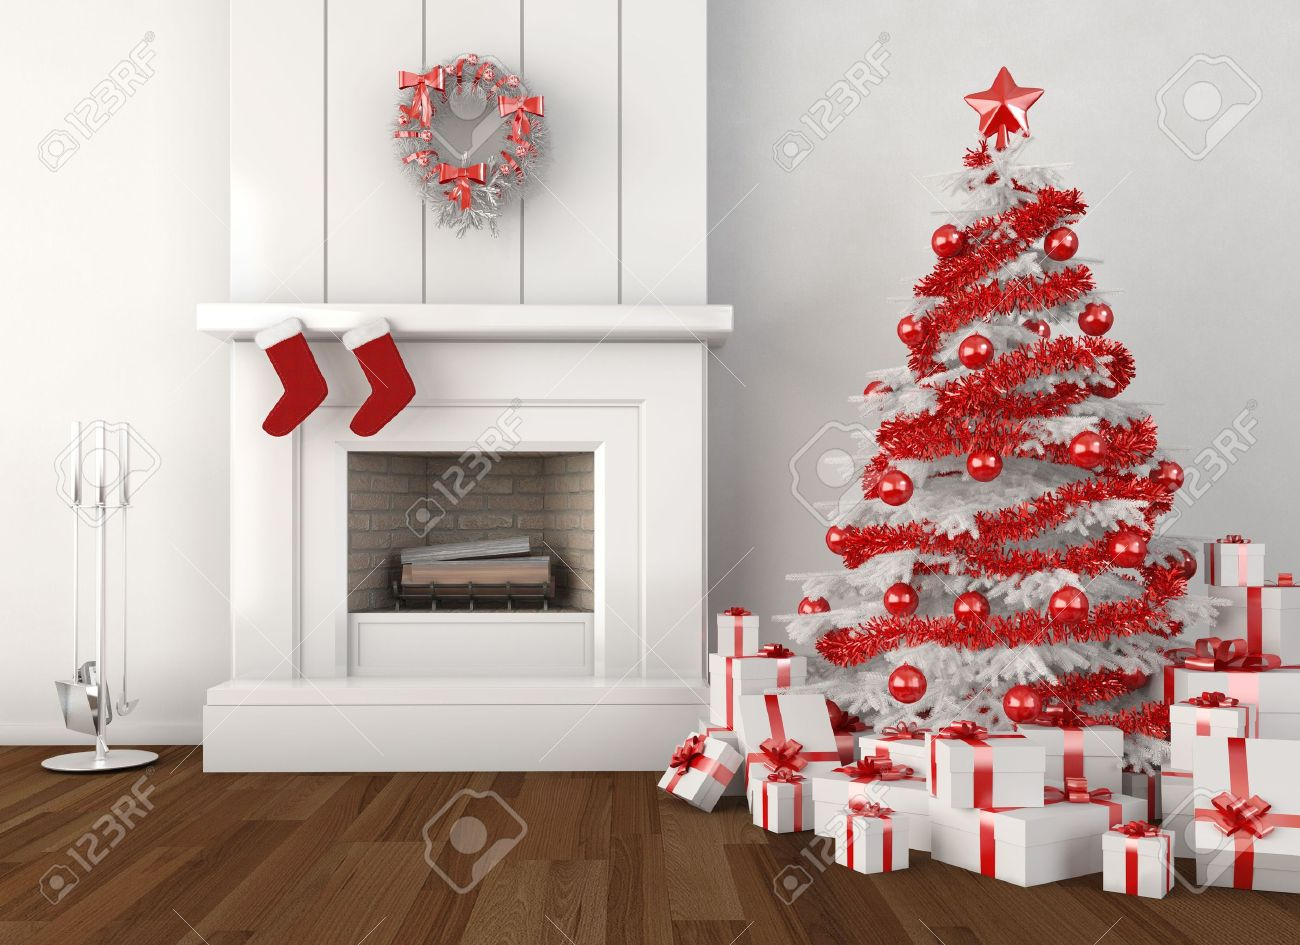 modern home interior with fireplace and christmas tree in white and red colors Stock Photo - 8163626